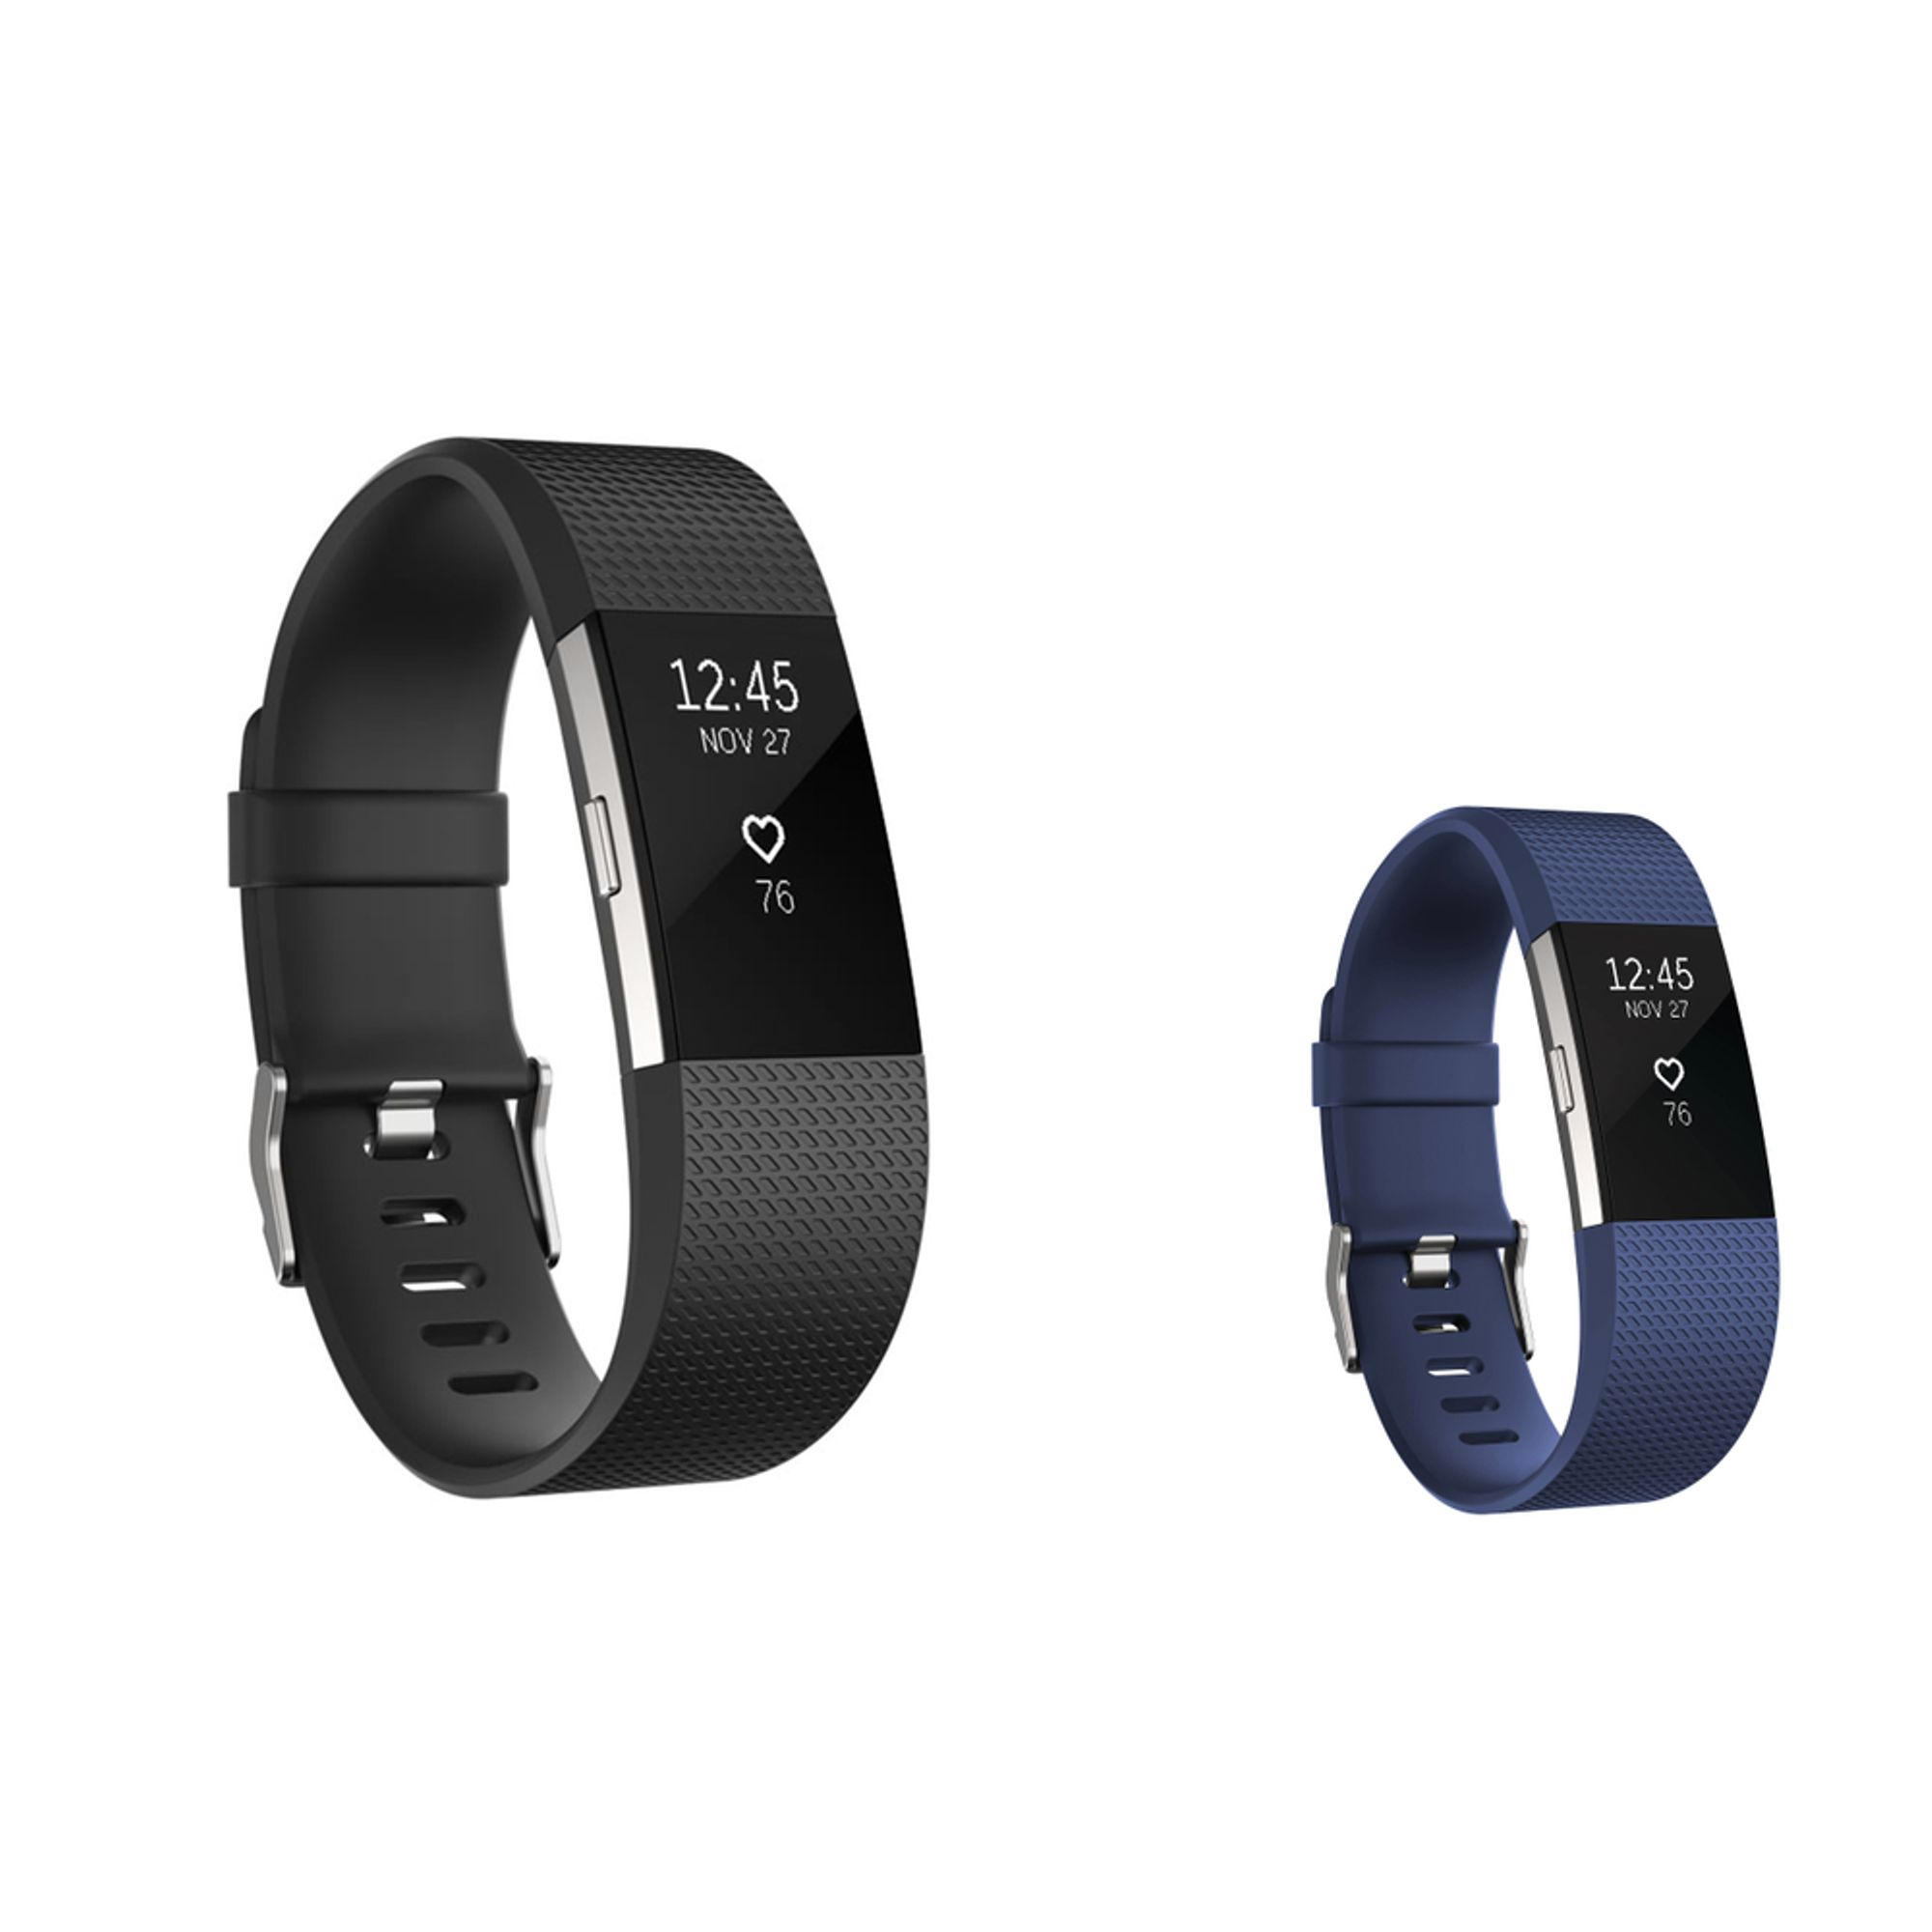 Zodaca 2 pack (Black & Dark Blue) Replacement Accessory Soft Silicone Rubber Adjustable Wristband Strap Band with Watchband-style Buckle for Fitbit Charge 2